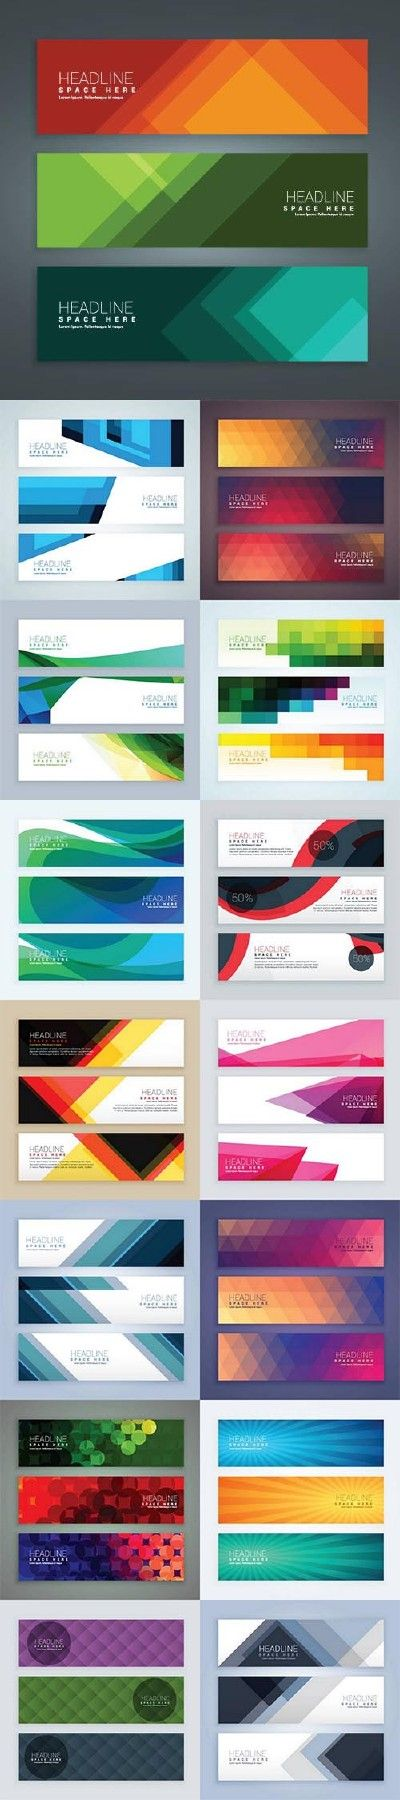 horizontal banner web design more - Banner Design Ideas